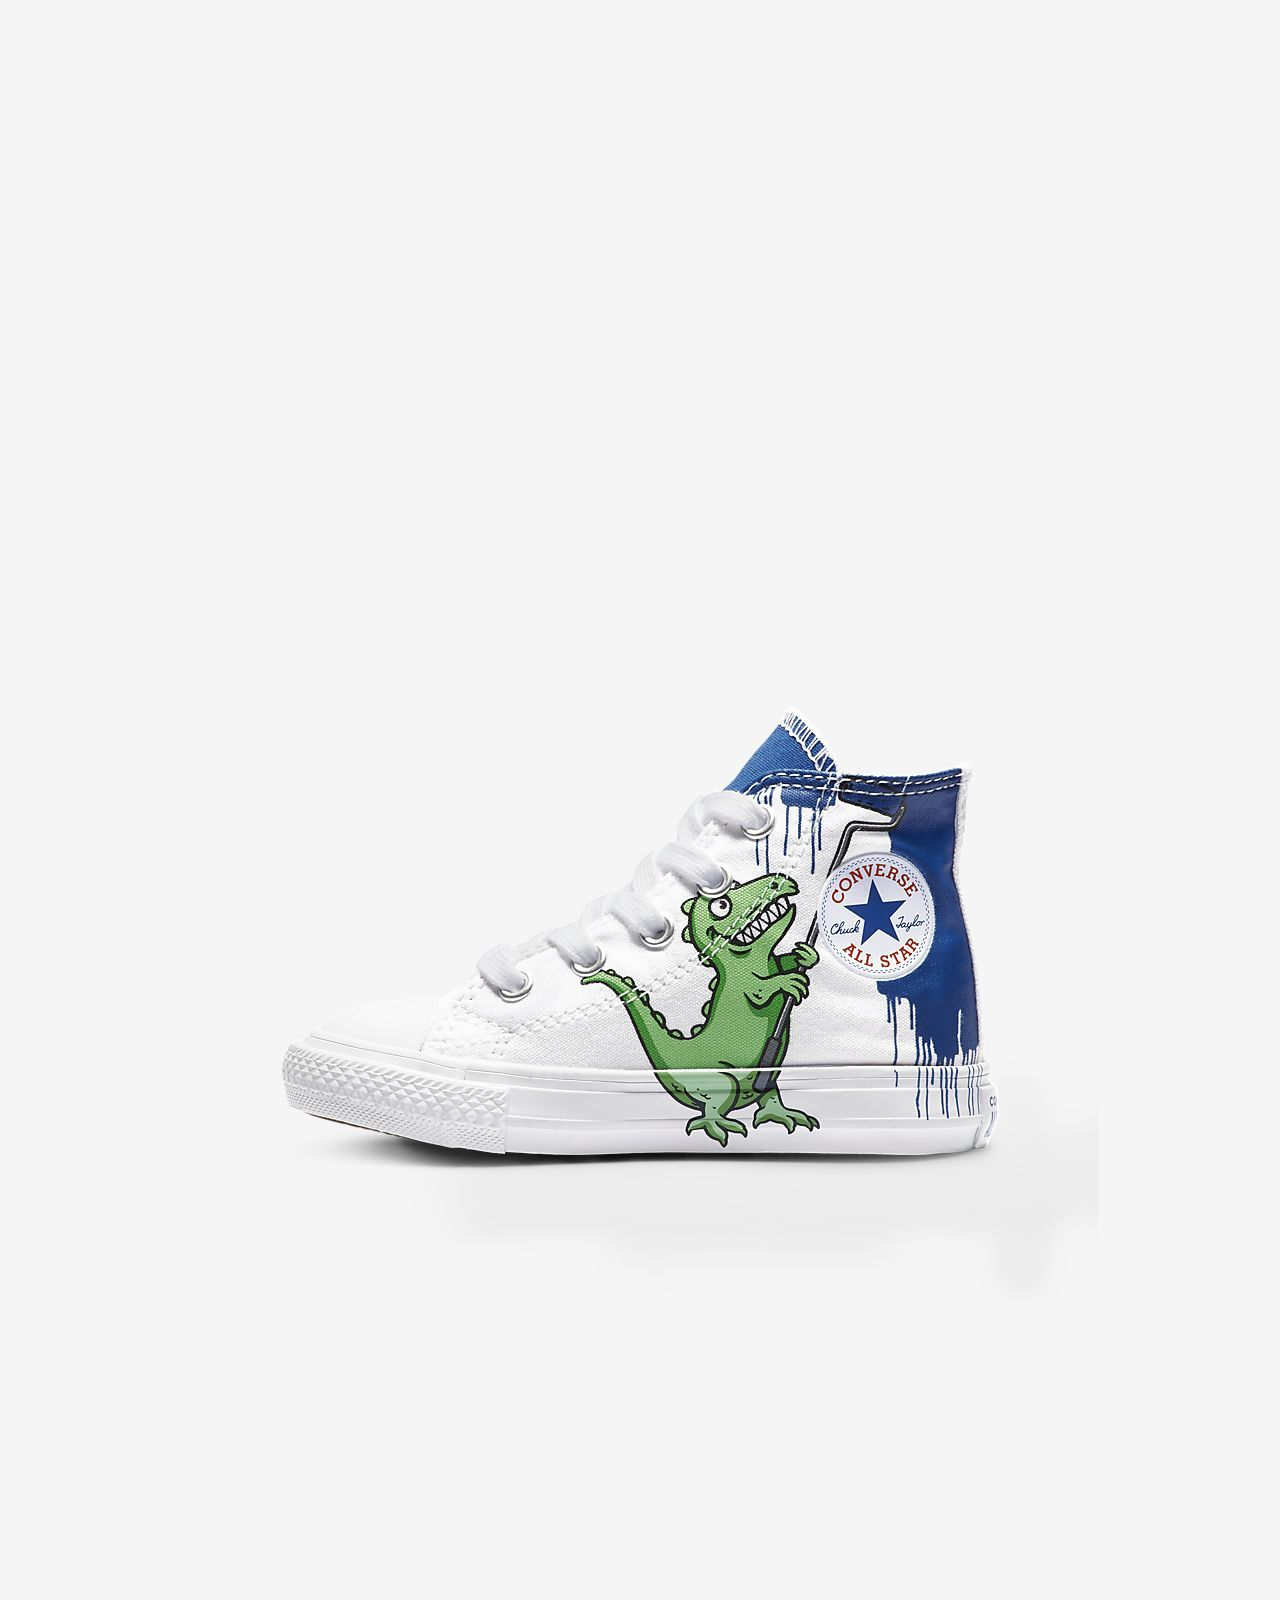 e902deda1d0575 Converse Chuck Taylor All Star Dinoverse Toddler Shoe